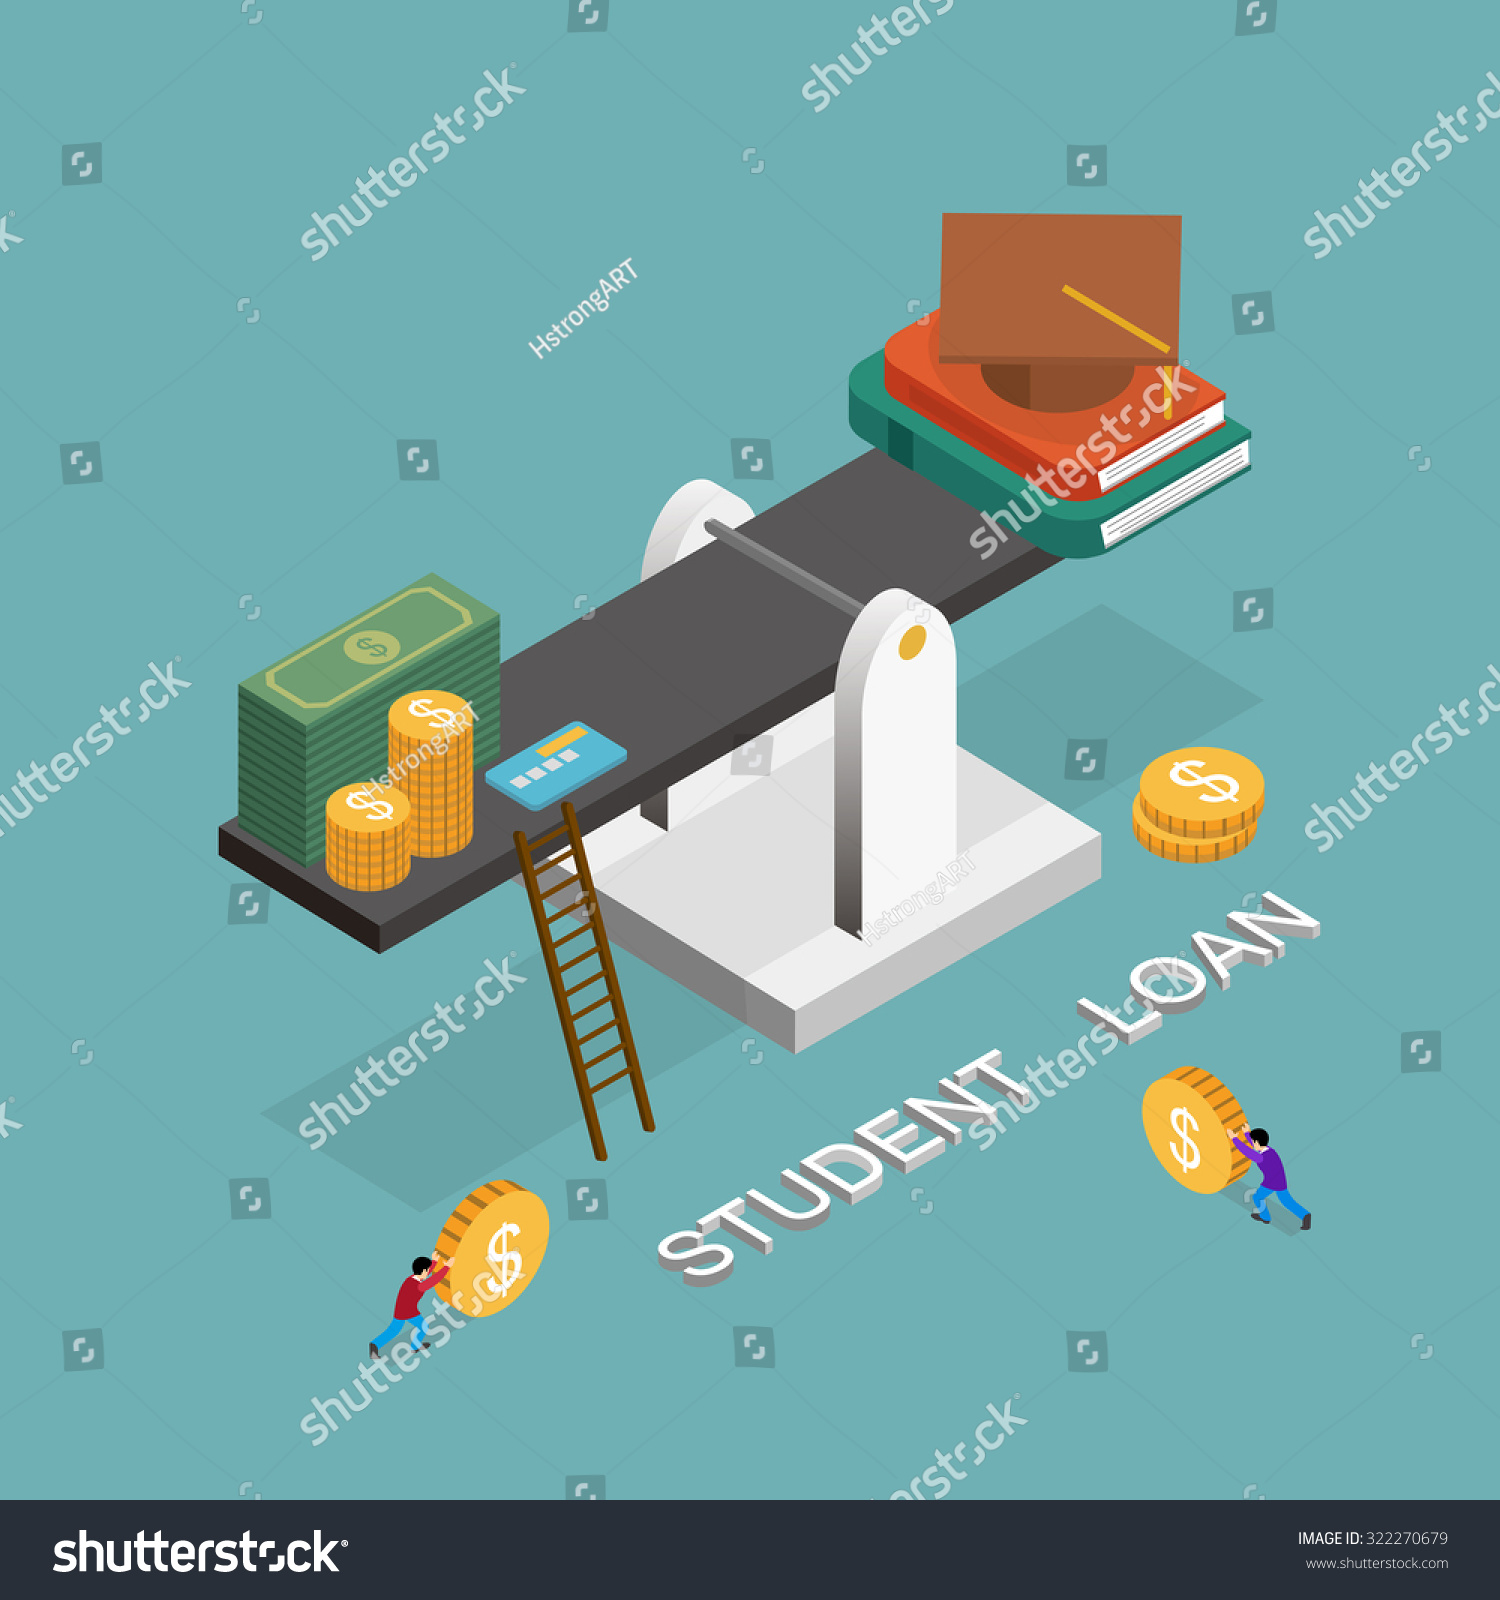 Student loan concept in 3d isometric flat design stock for 3d flat design online